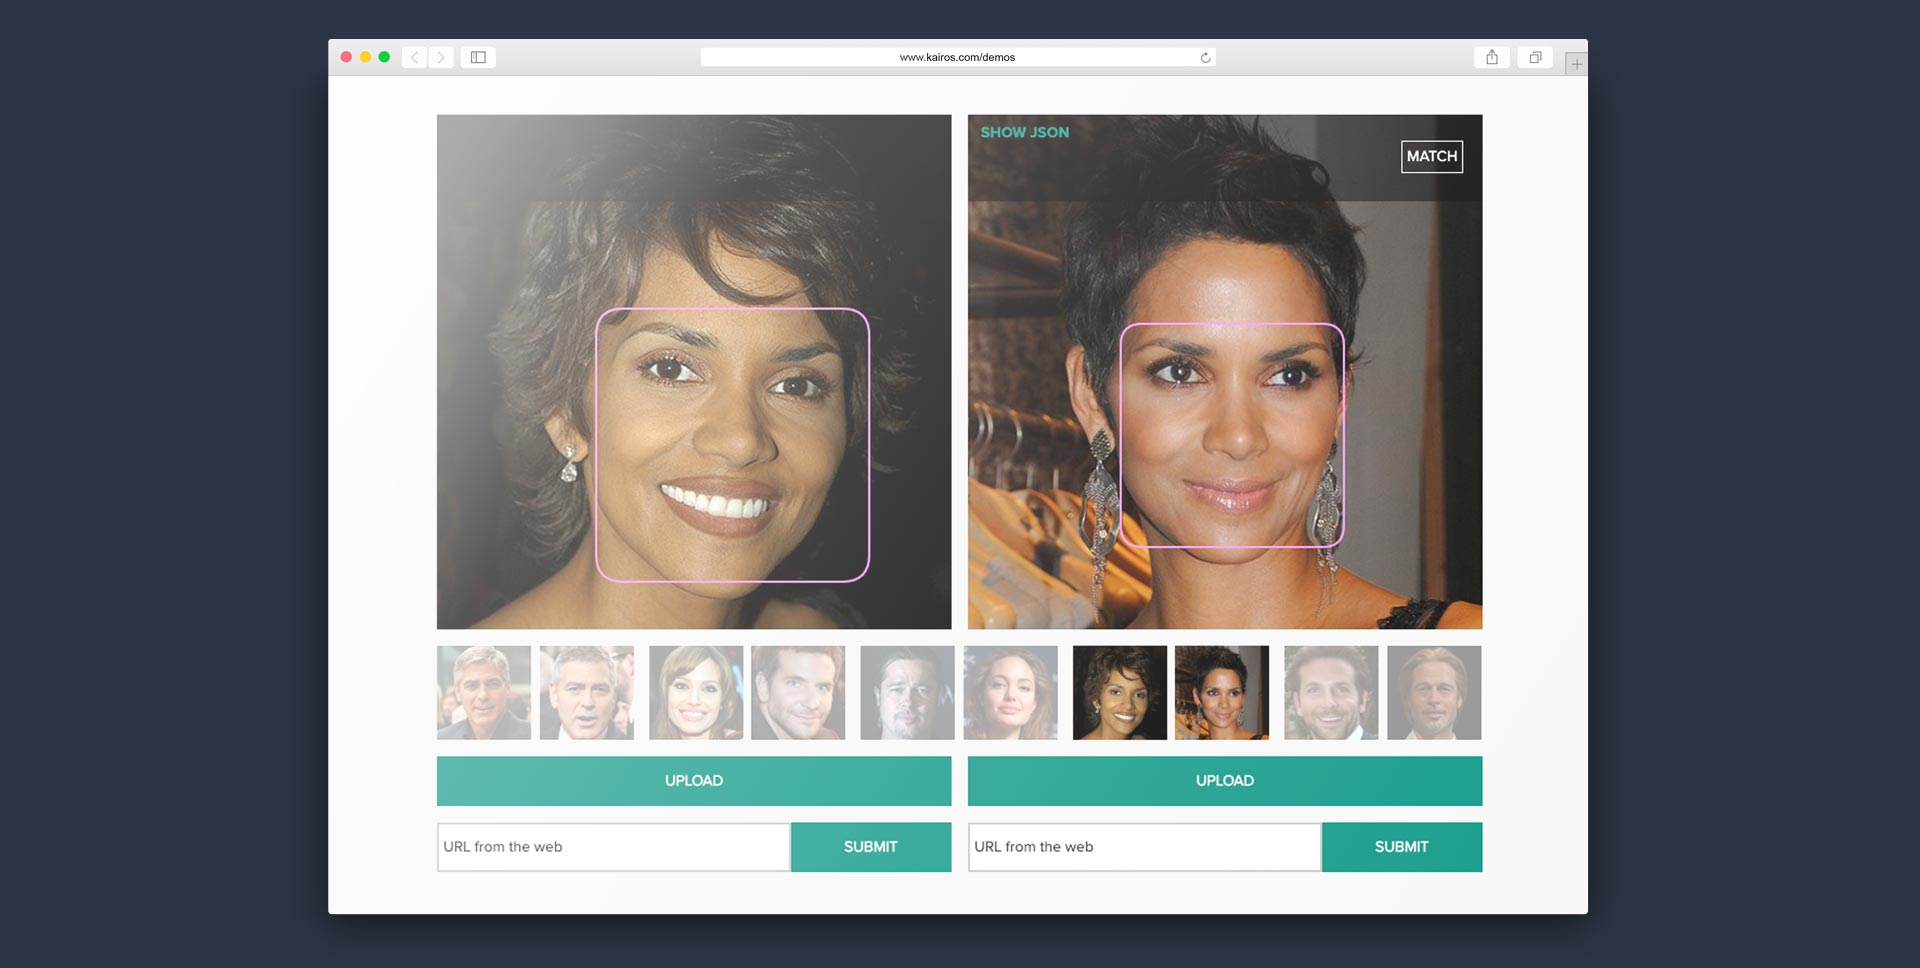 Kairos Facial Recognition Demos